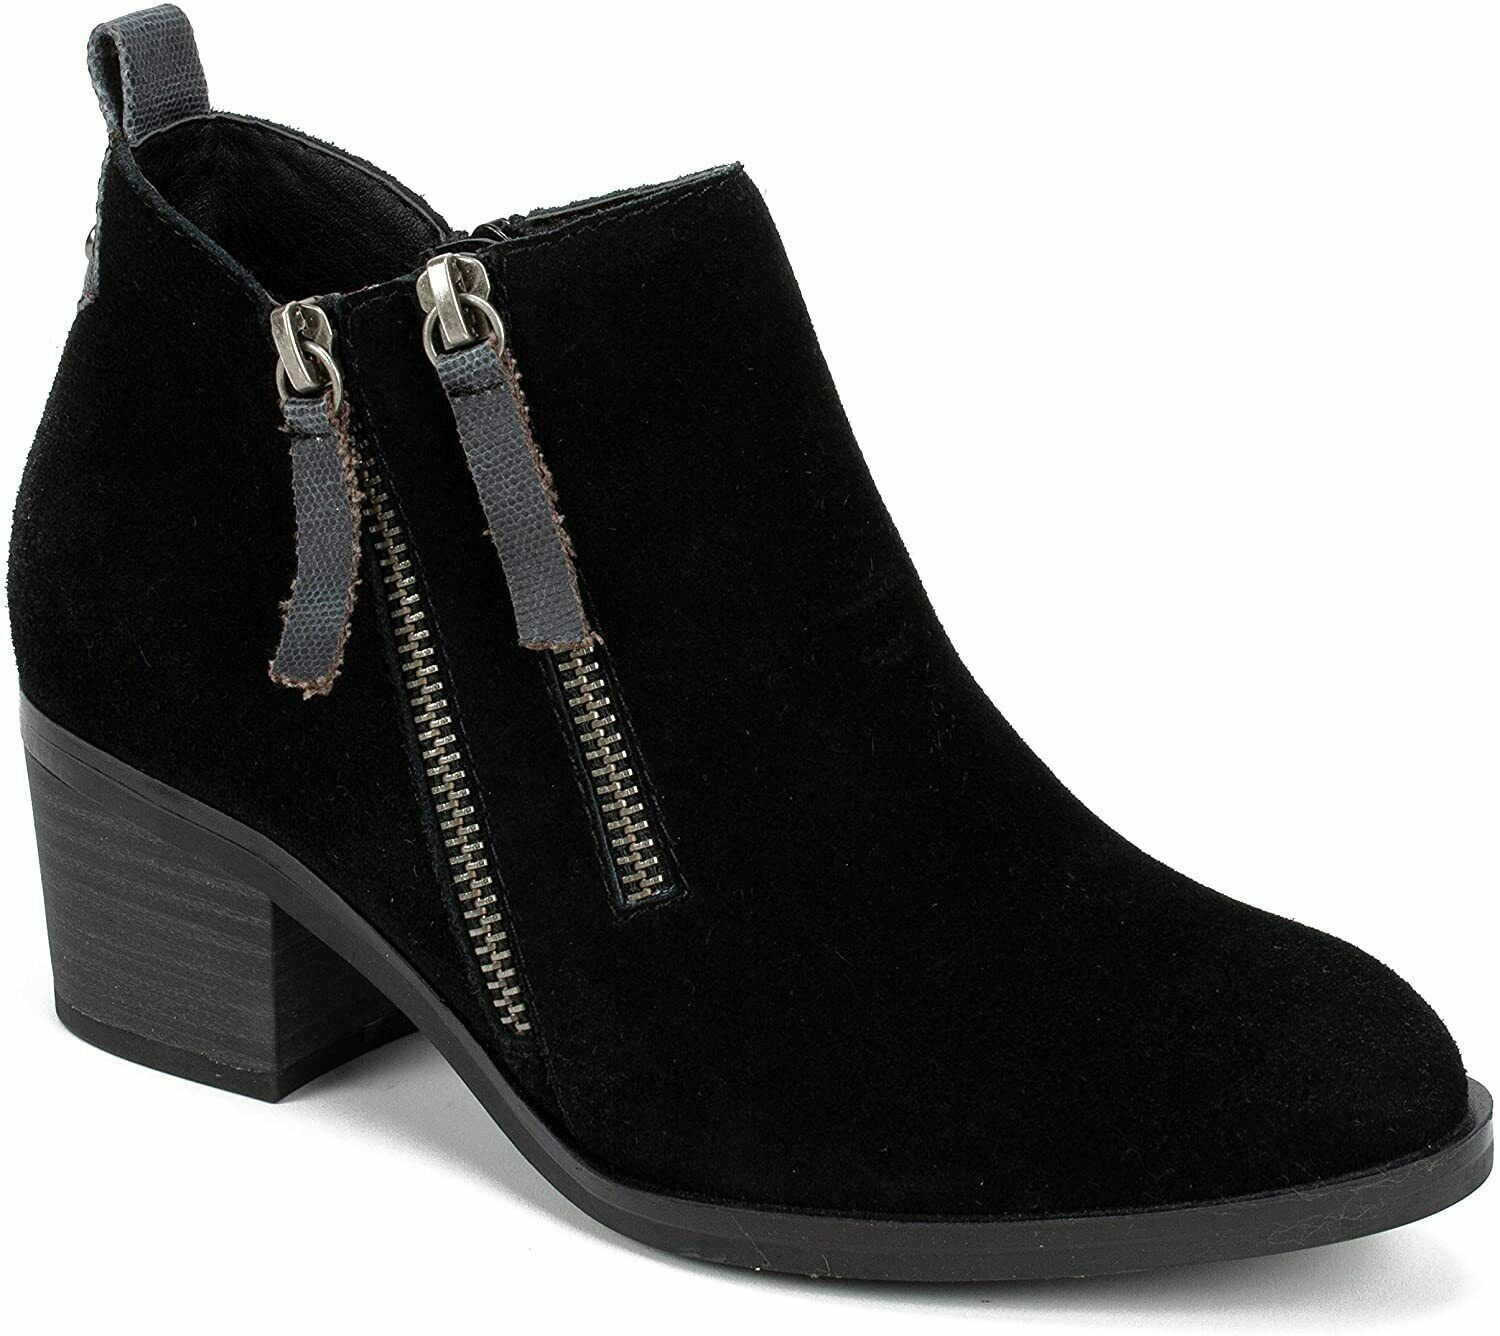 Womens White Mountain Sienna Ankle Boots - Black/Suede, Size 8.5 M US - £59.39 GBP